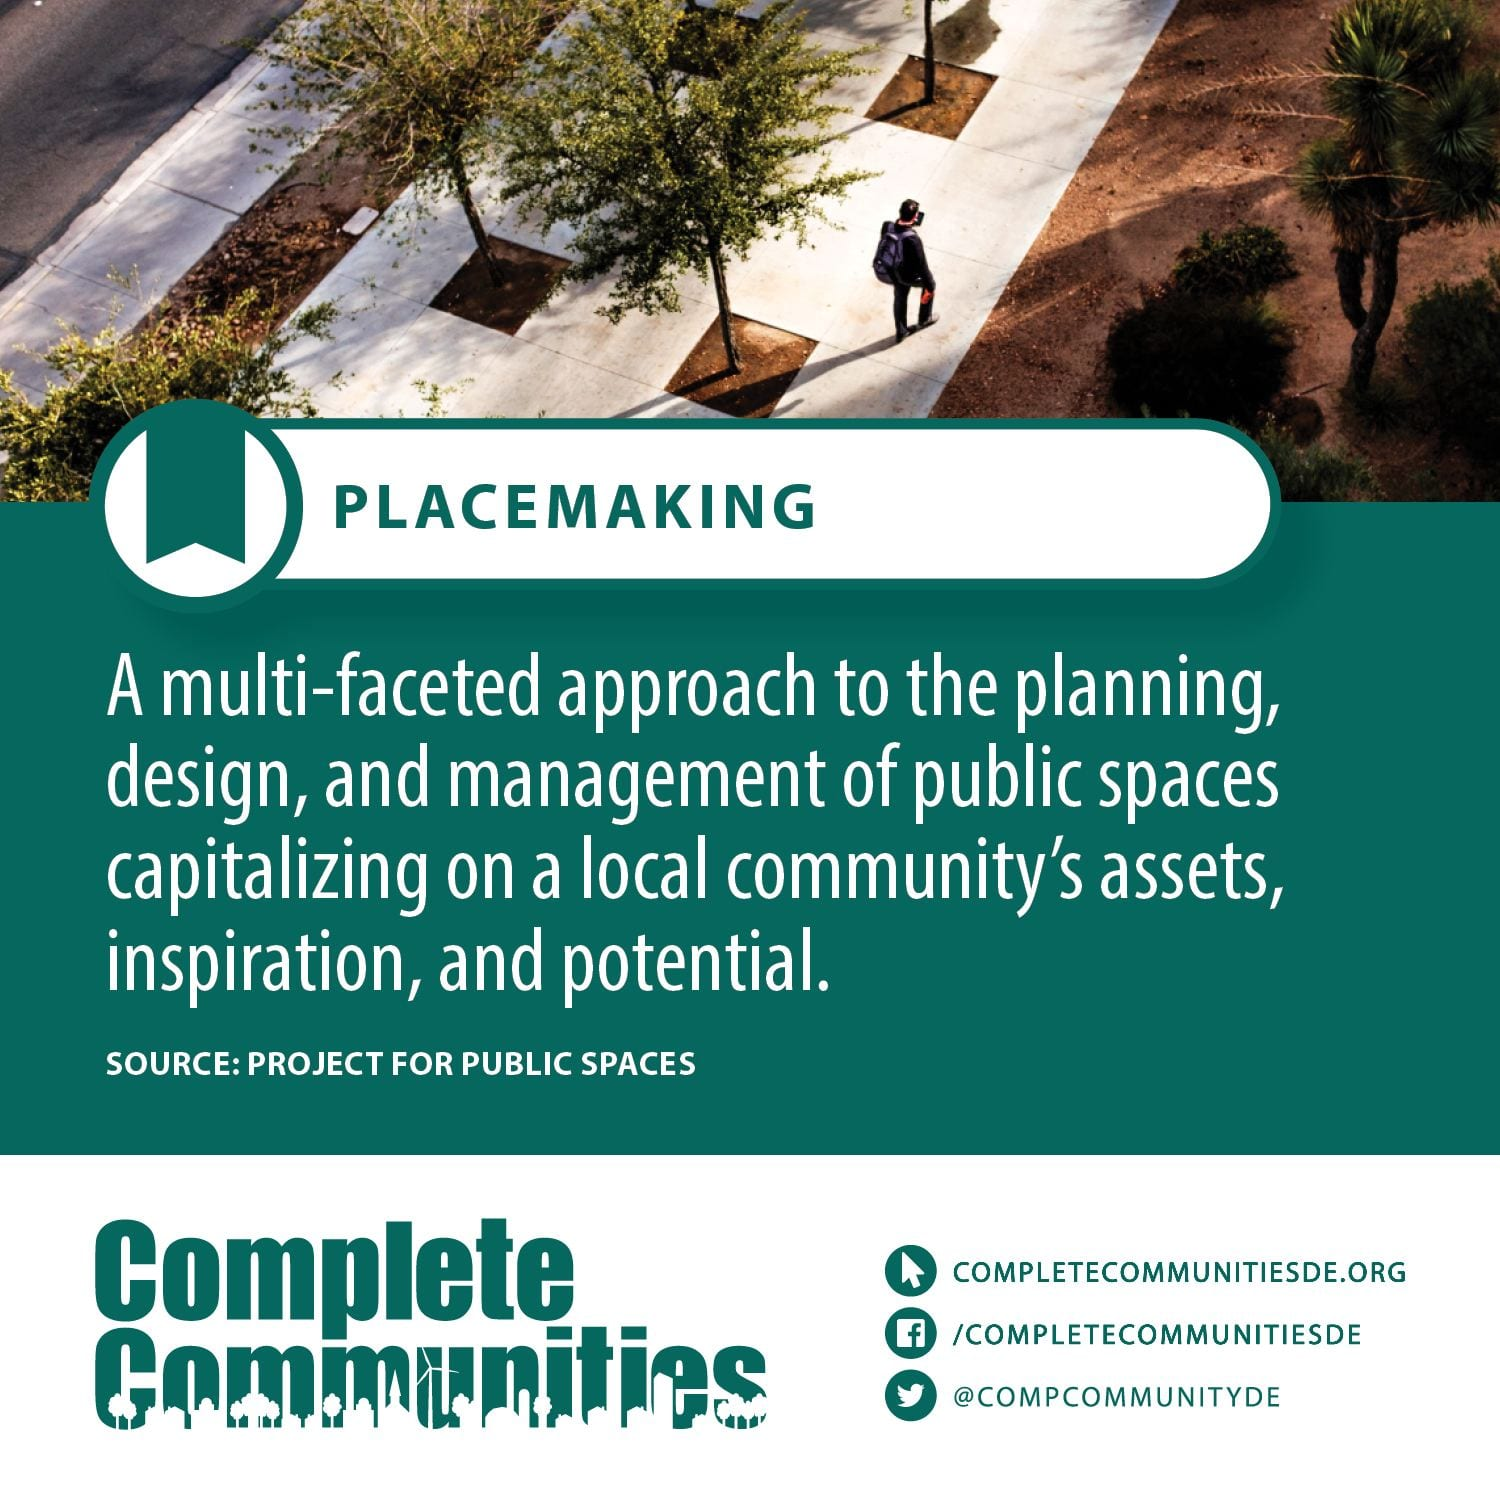 Placemaking: A multi-faceted approach in the planning, design, and management of public spaces capitalizing on a local community's assets, inspiration, and potential.